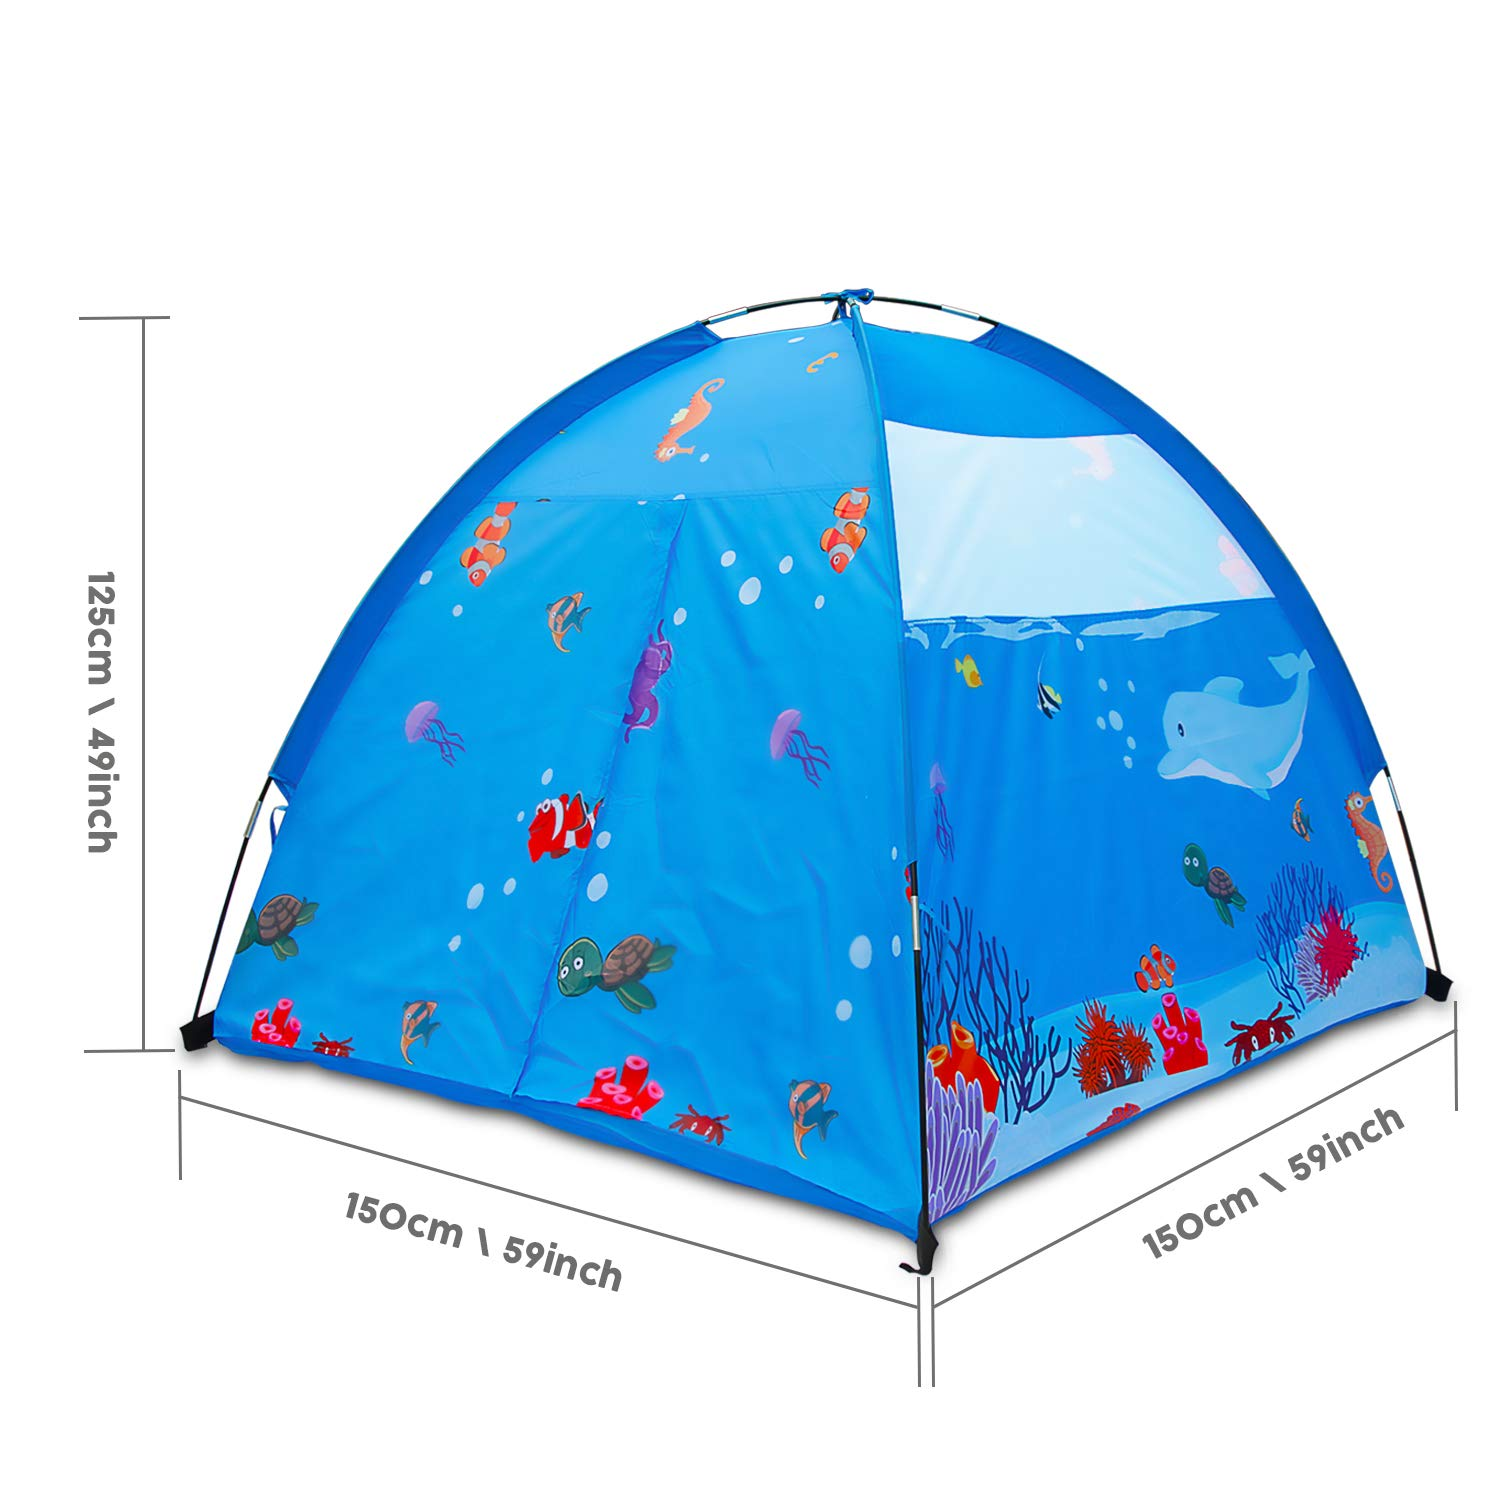 ALPIKA Play Tent Kids Mermaid Toys Children Indoor Outdoor Playhouse for Kids Happy Play Blue